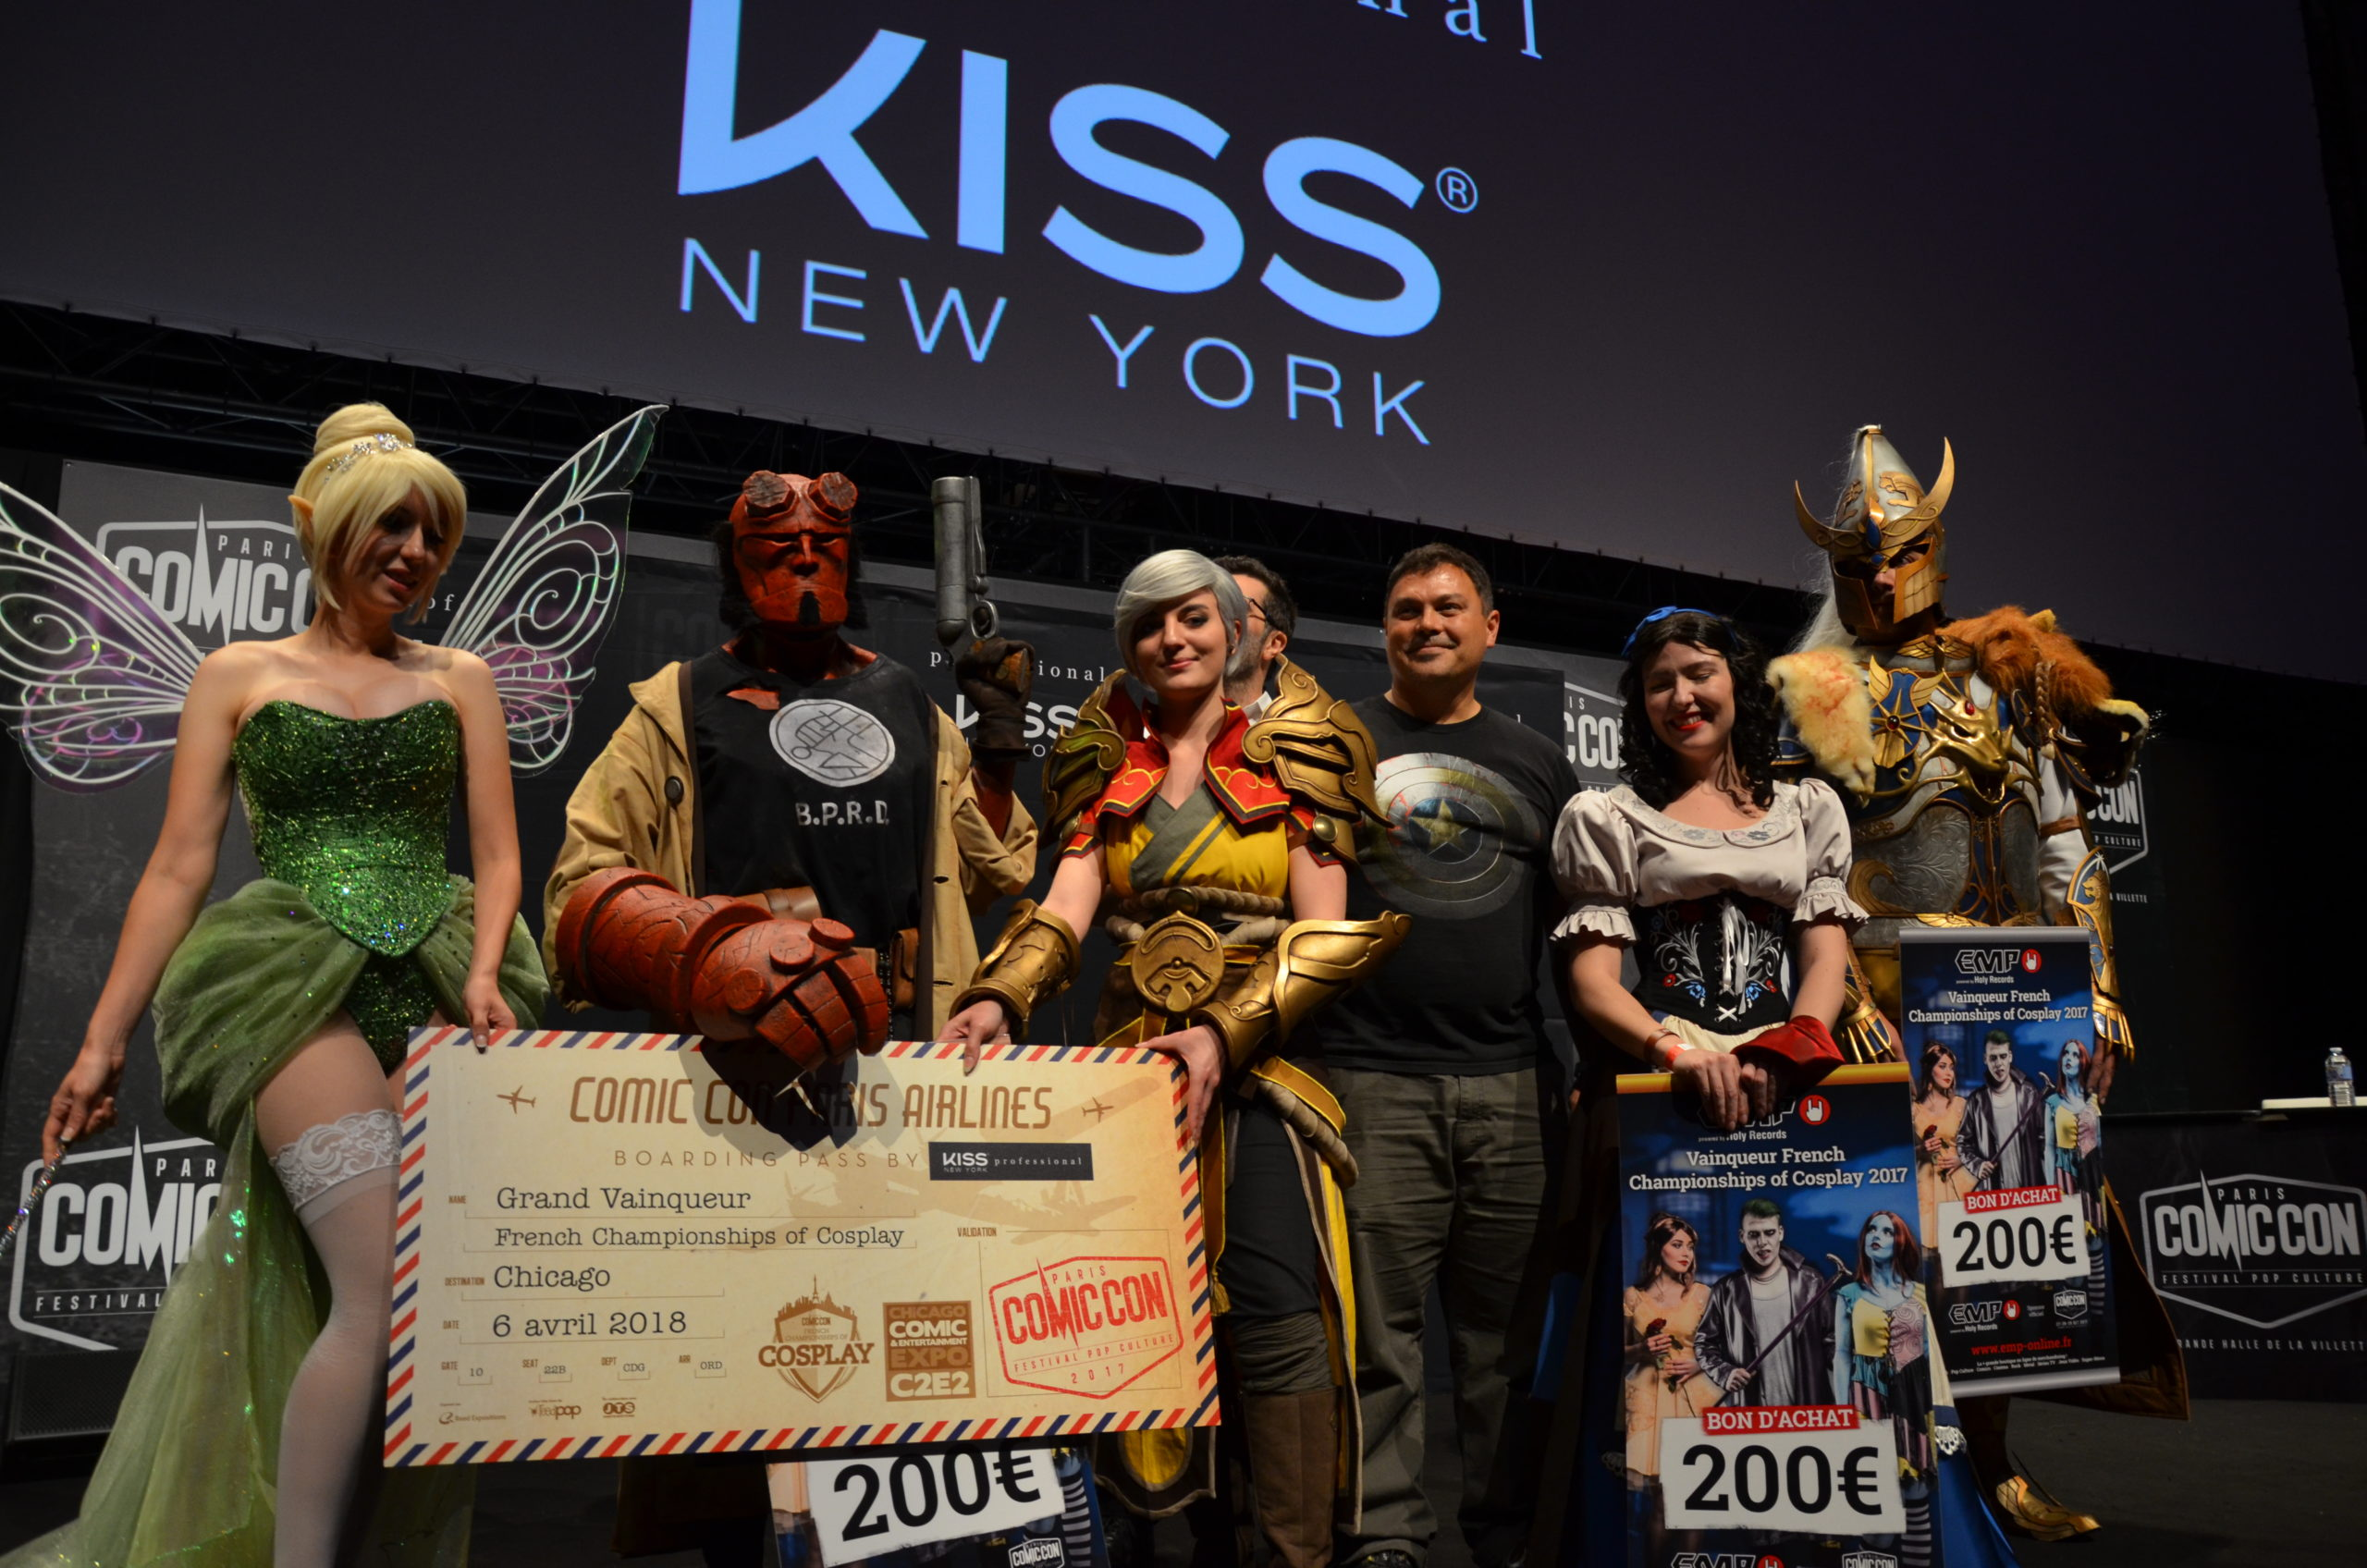 Riki Lecotey, Arlek1 Workshop (1ère place + prix FX), Black Owl Studio, Chris Donio, Newbie Cosplay (prix couture) et Aldarion Cosplay (prix armure)